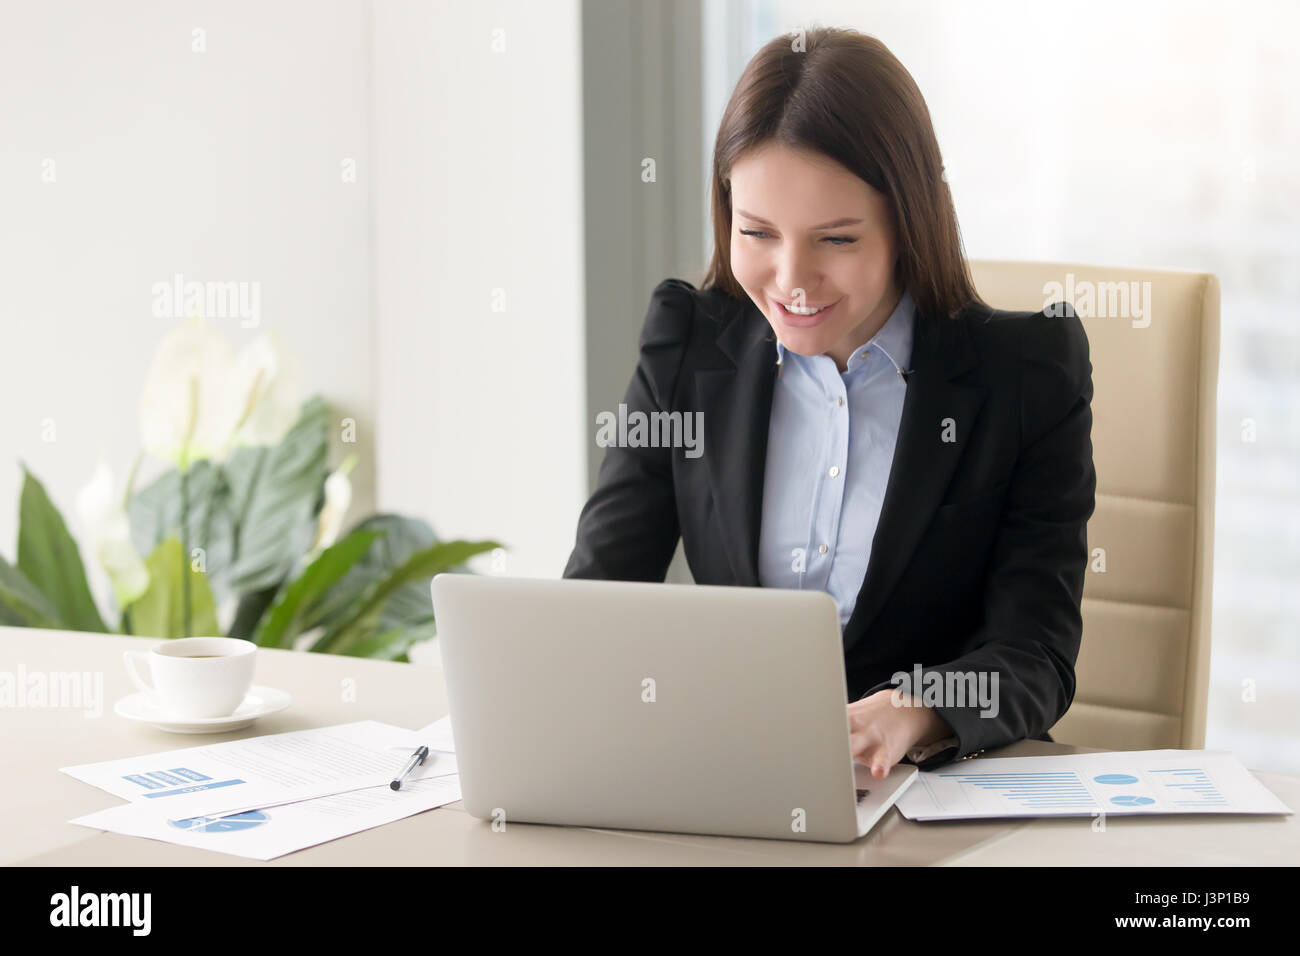 Smiling young business lady working with laptop, looking at scre - Stock Image